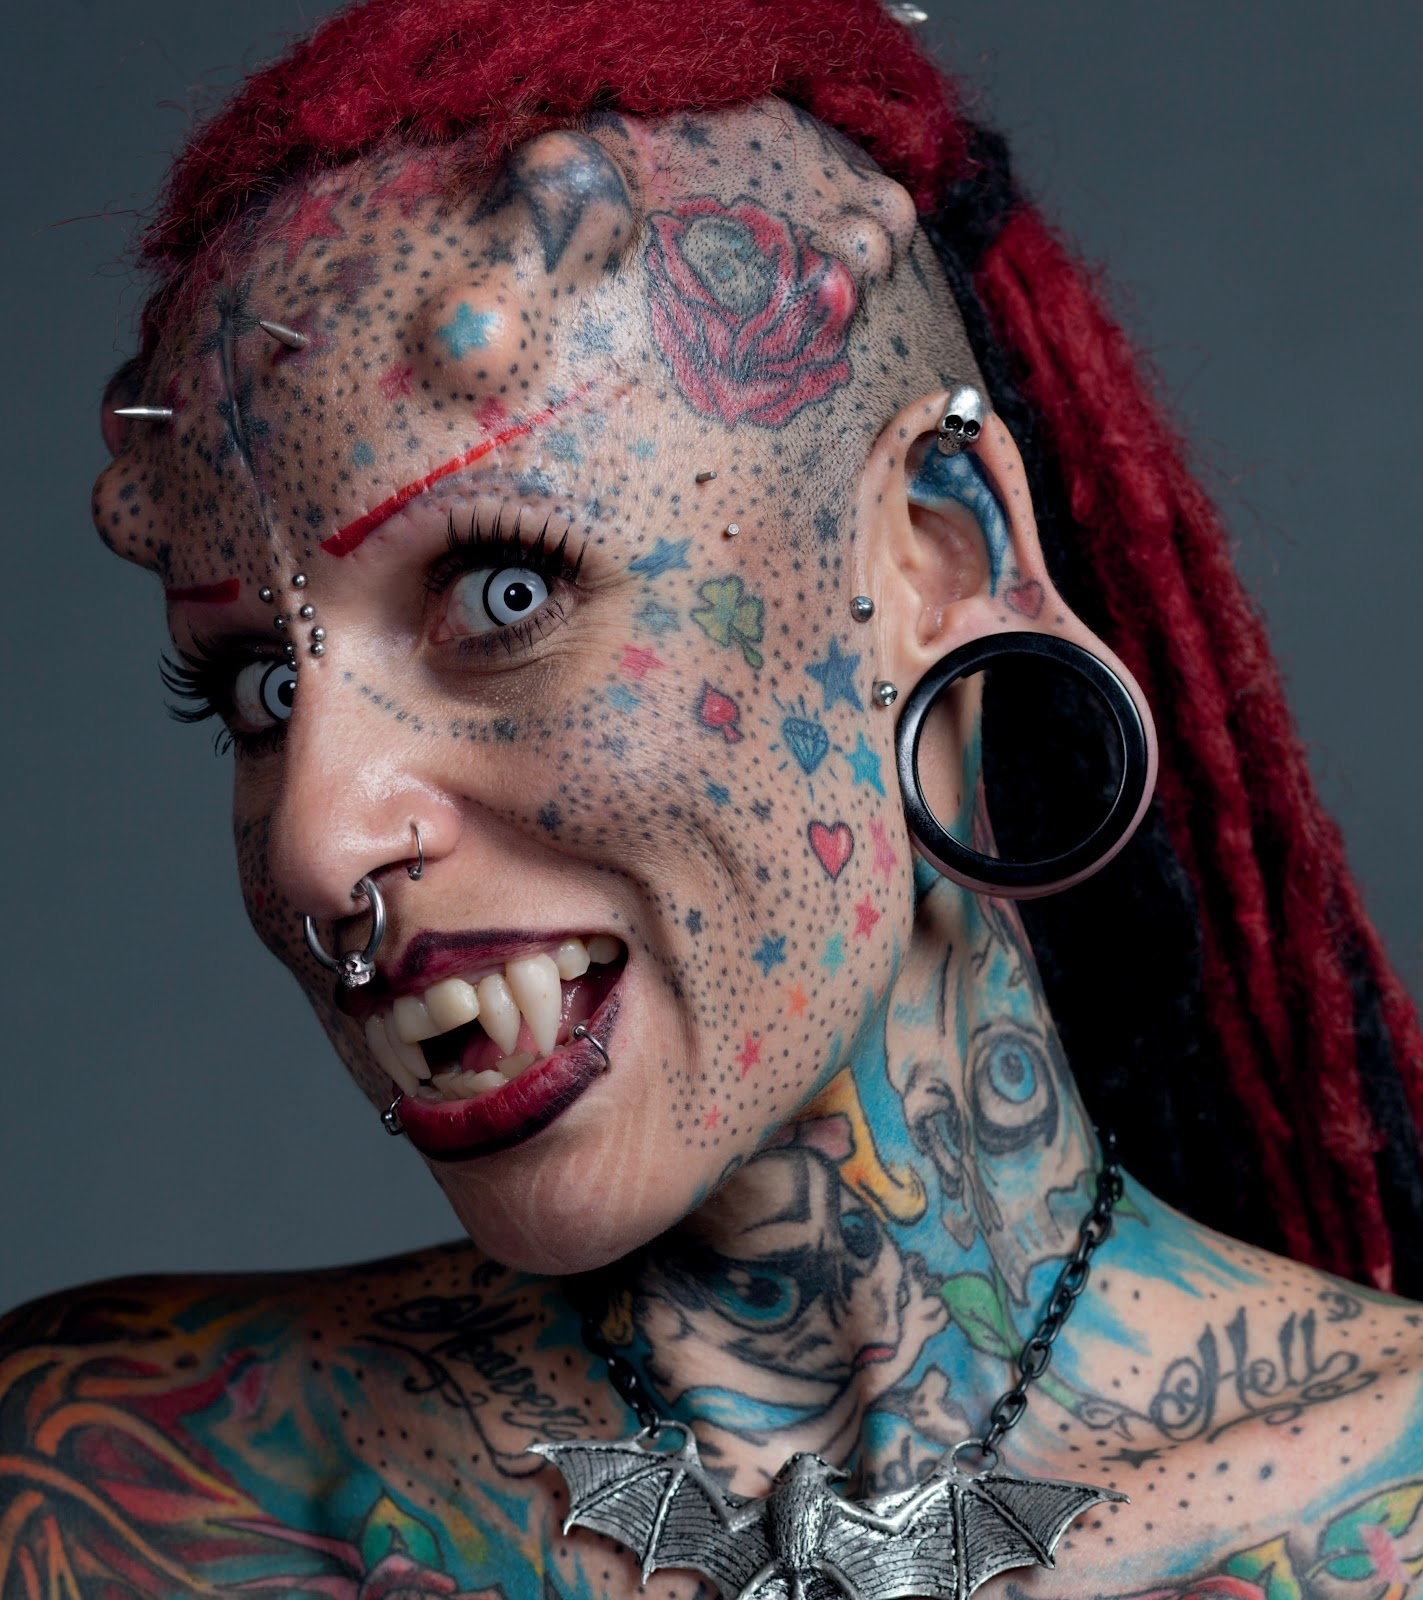 Should face modifications, <b>tattoos and piercings</b> be banned ...